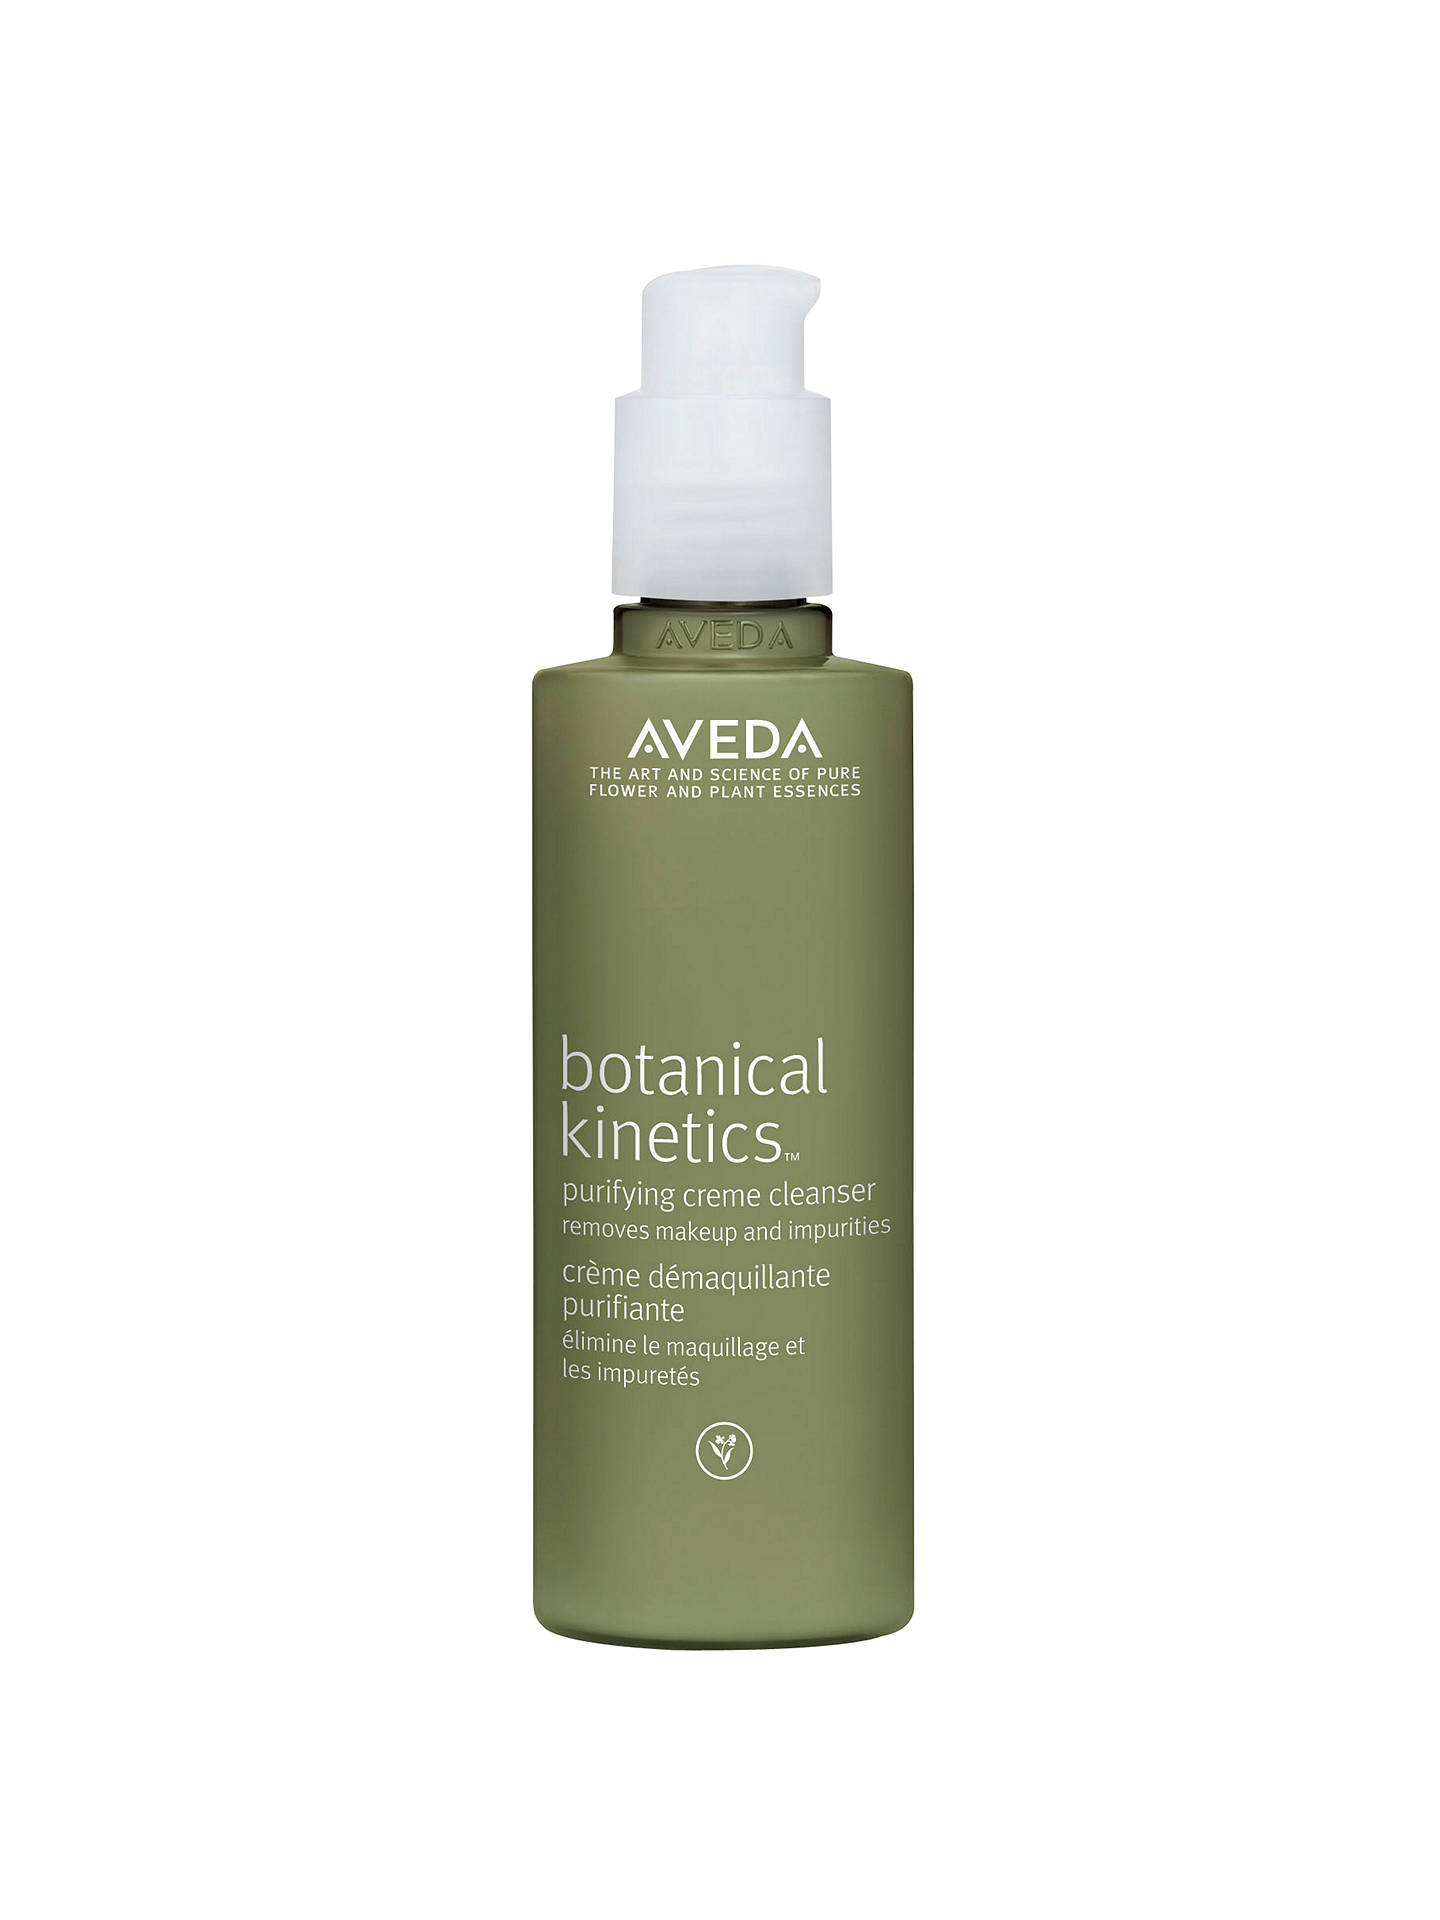 BuyAVEDA Botanical Kinetics™ Purifying Creme Cleanser, 150ml Online at johnlewis.com